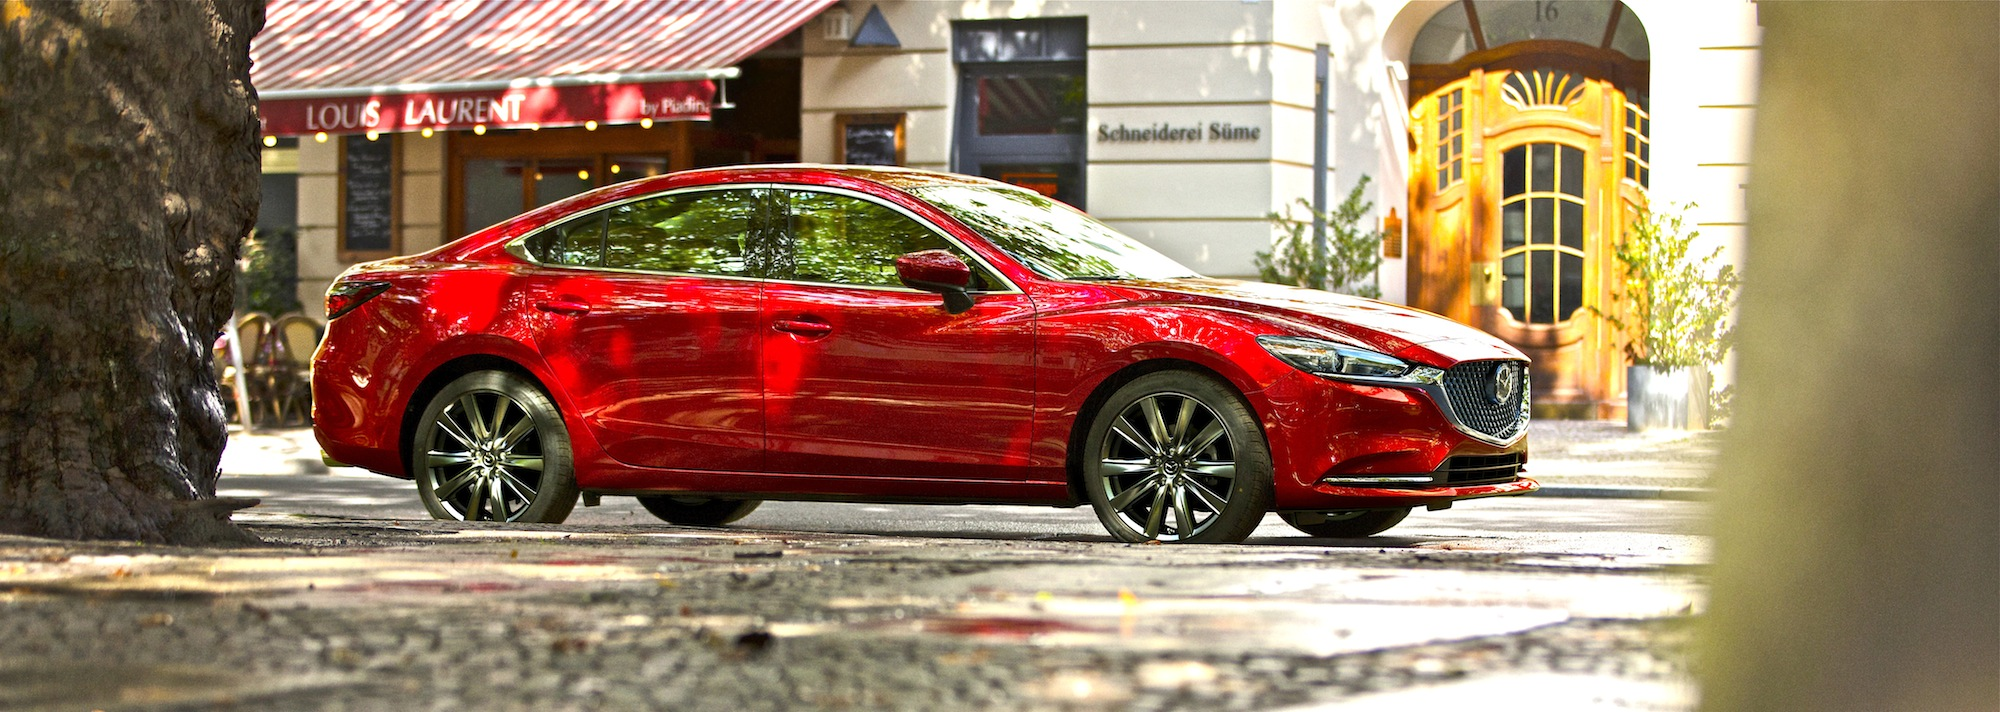 2018 Mazda6: Mid-Size Sedan For Drivers Adds Luxury And Performance